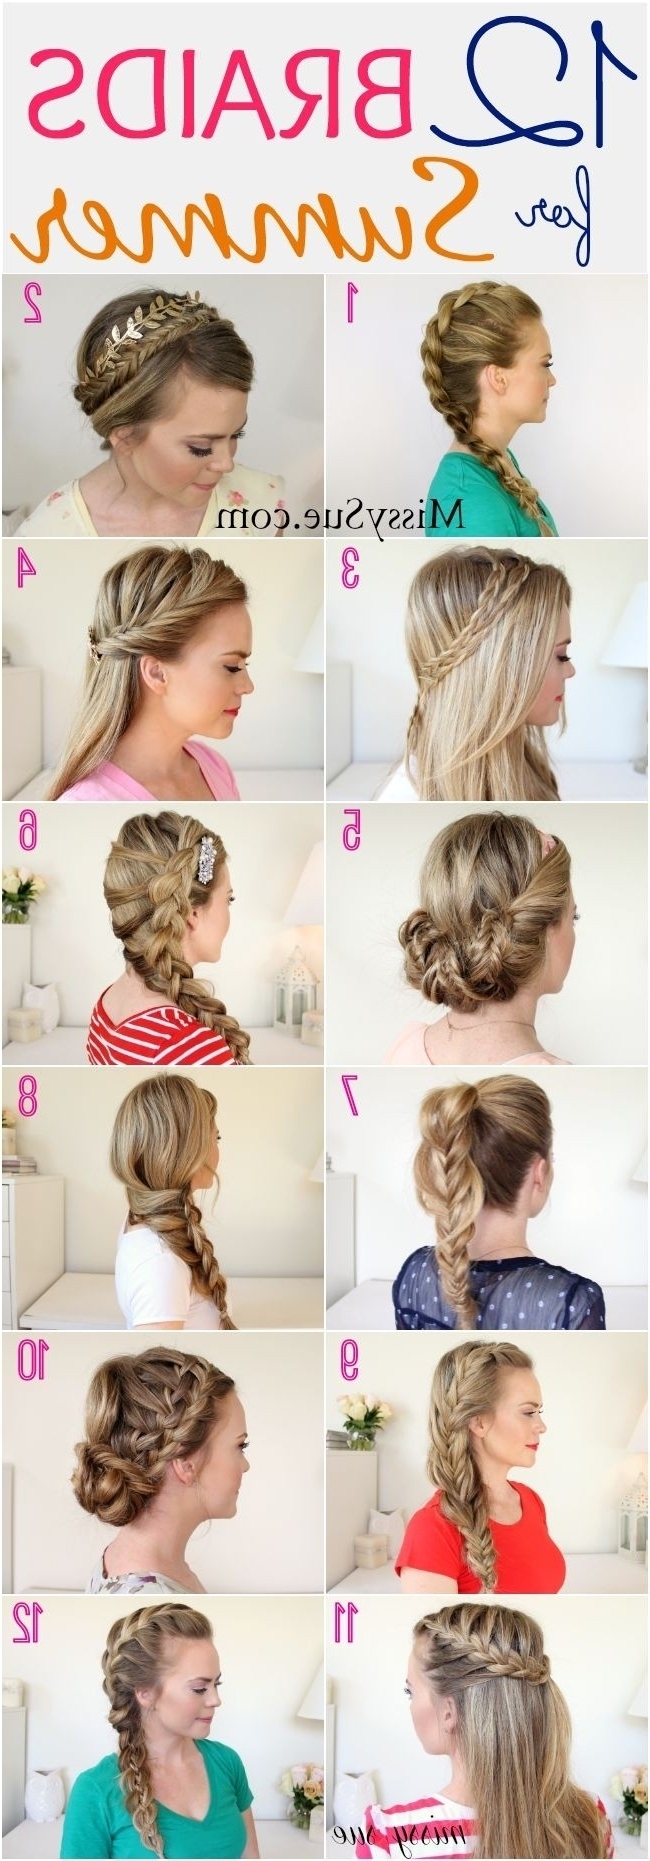 26 Pretty Braided Hairstyle For Summer – Popular Haircuts Pertaining To Most Recently Released Braided Hairstyles For Summer (View 12 of 15)